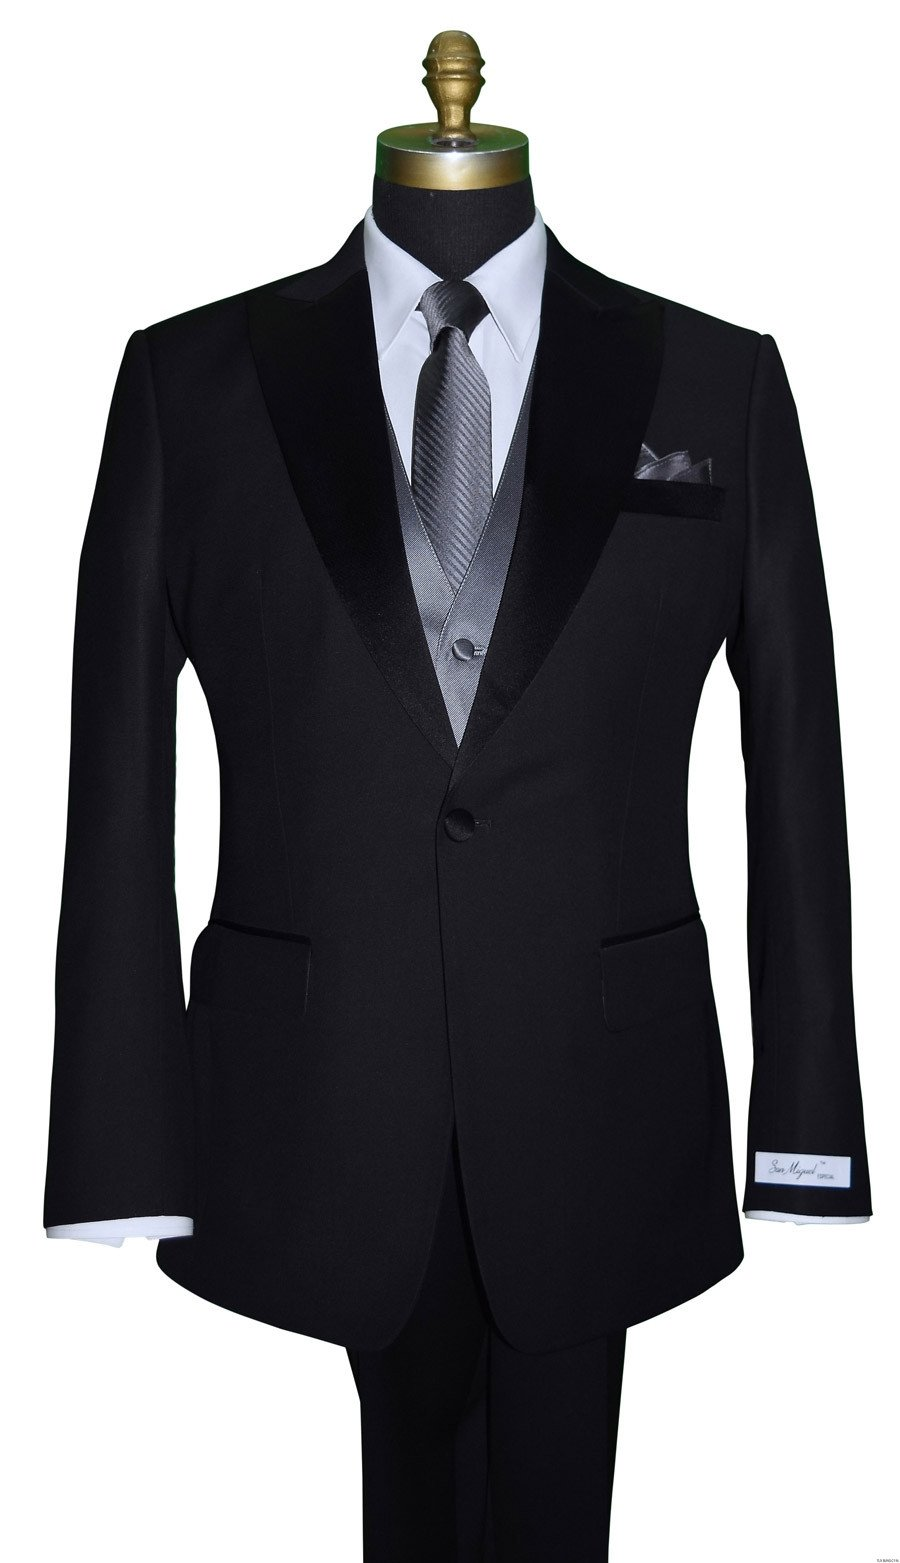 San Miguel peak lapel tuxedo with charcoal striped tie and vest